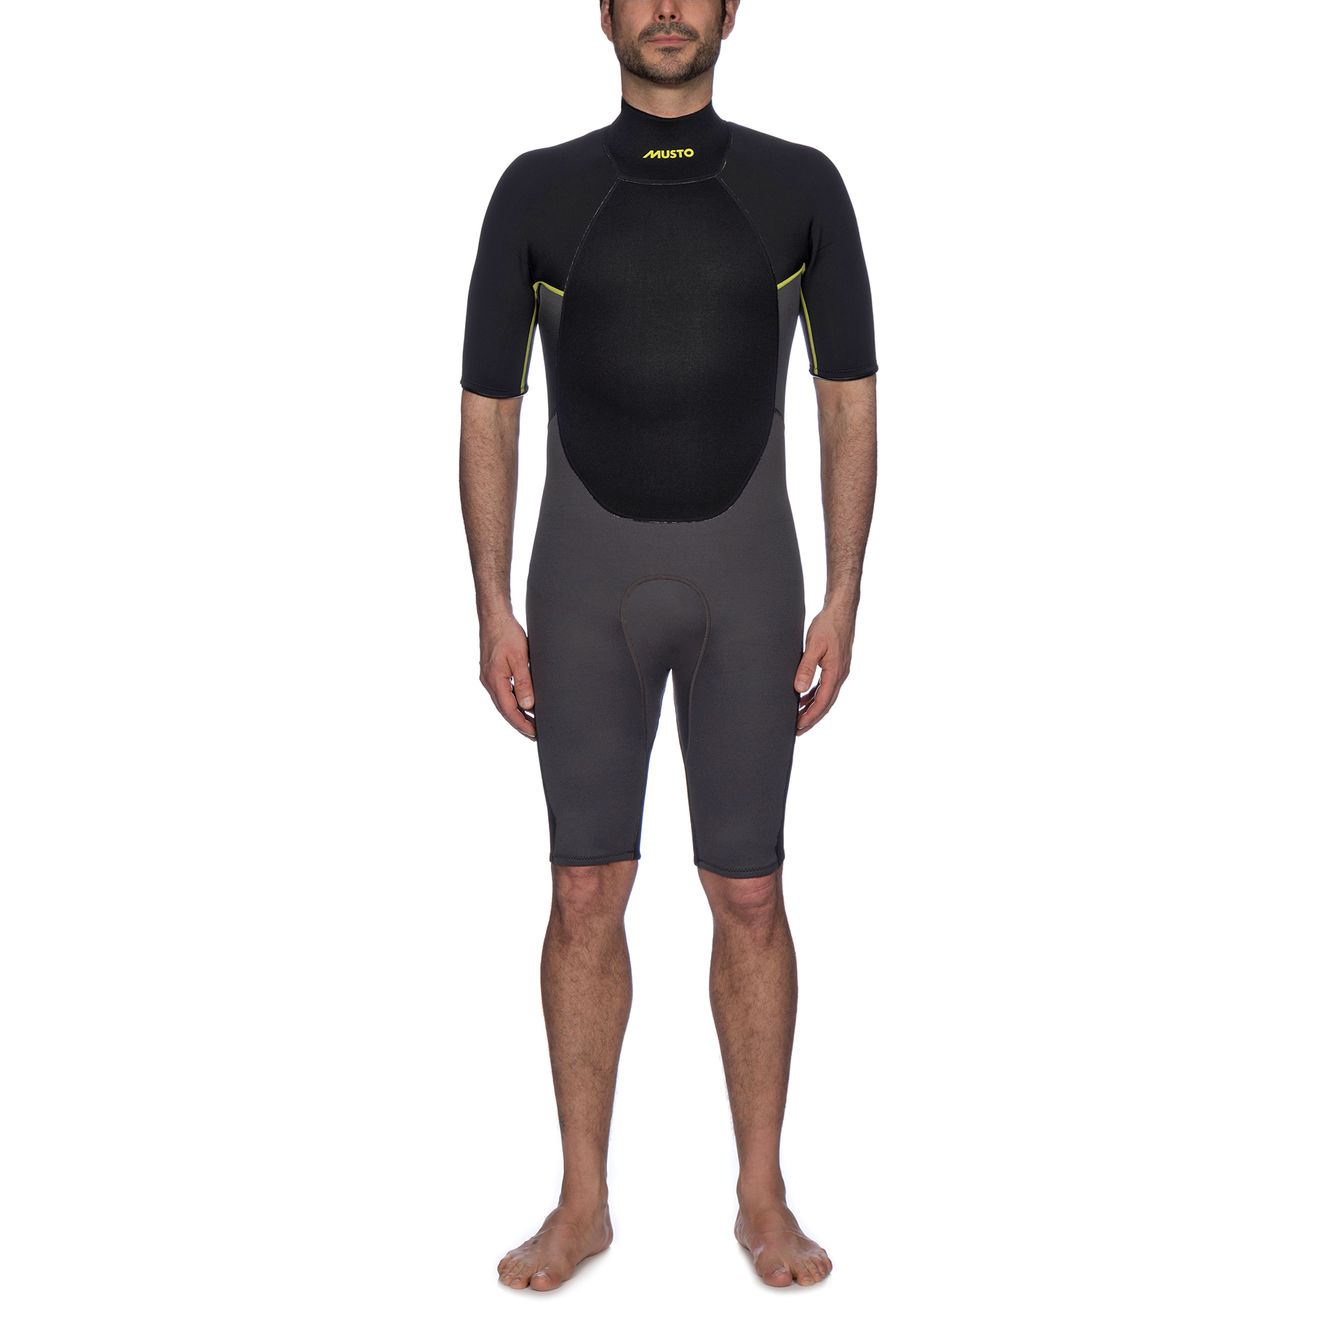 Championship Shorty Wetsuit Review